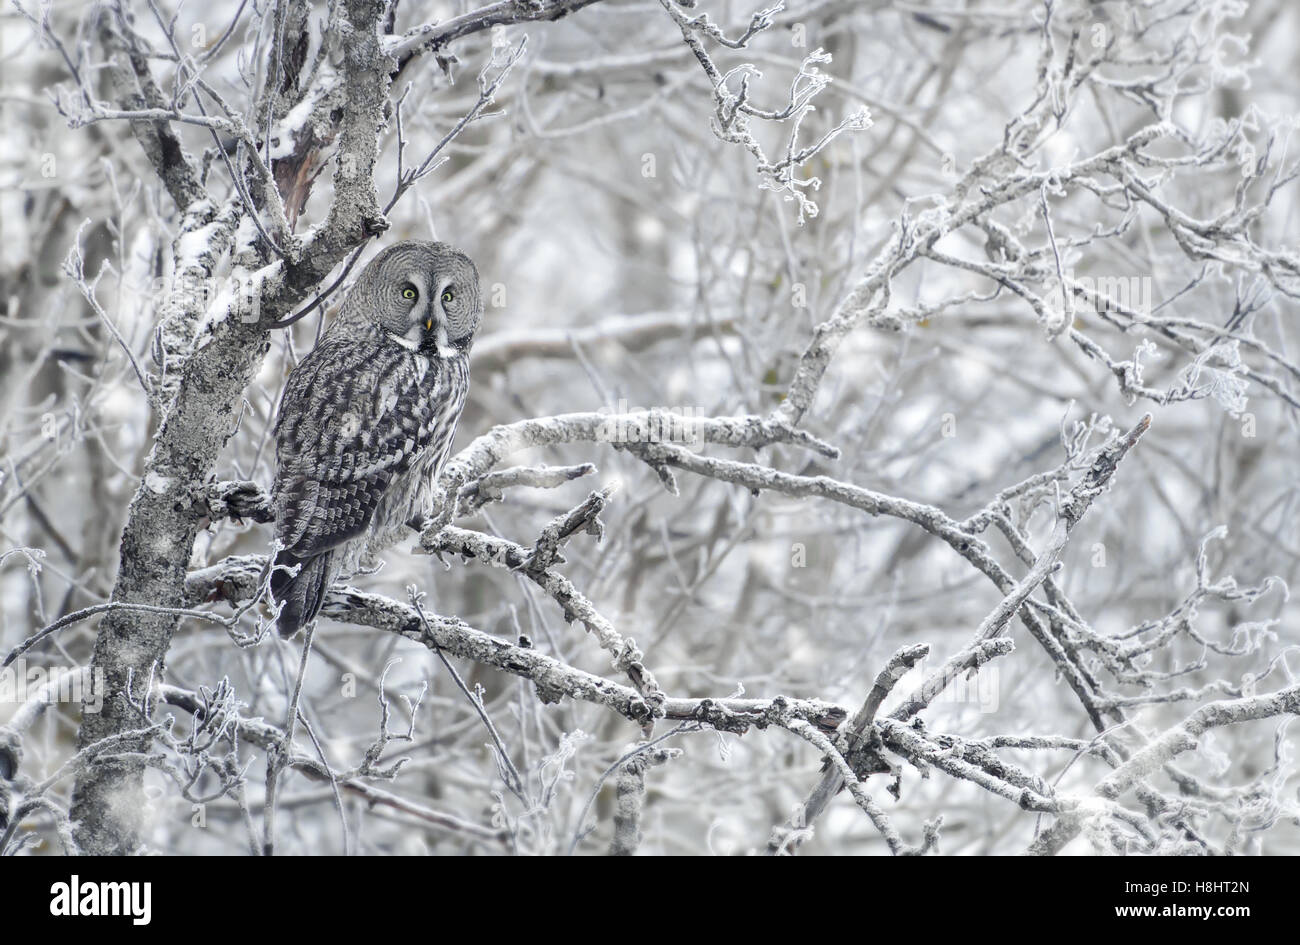 Great Grey Owl in winter - Stock Image